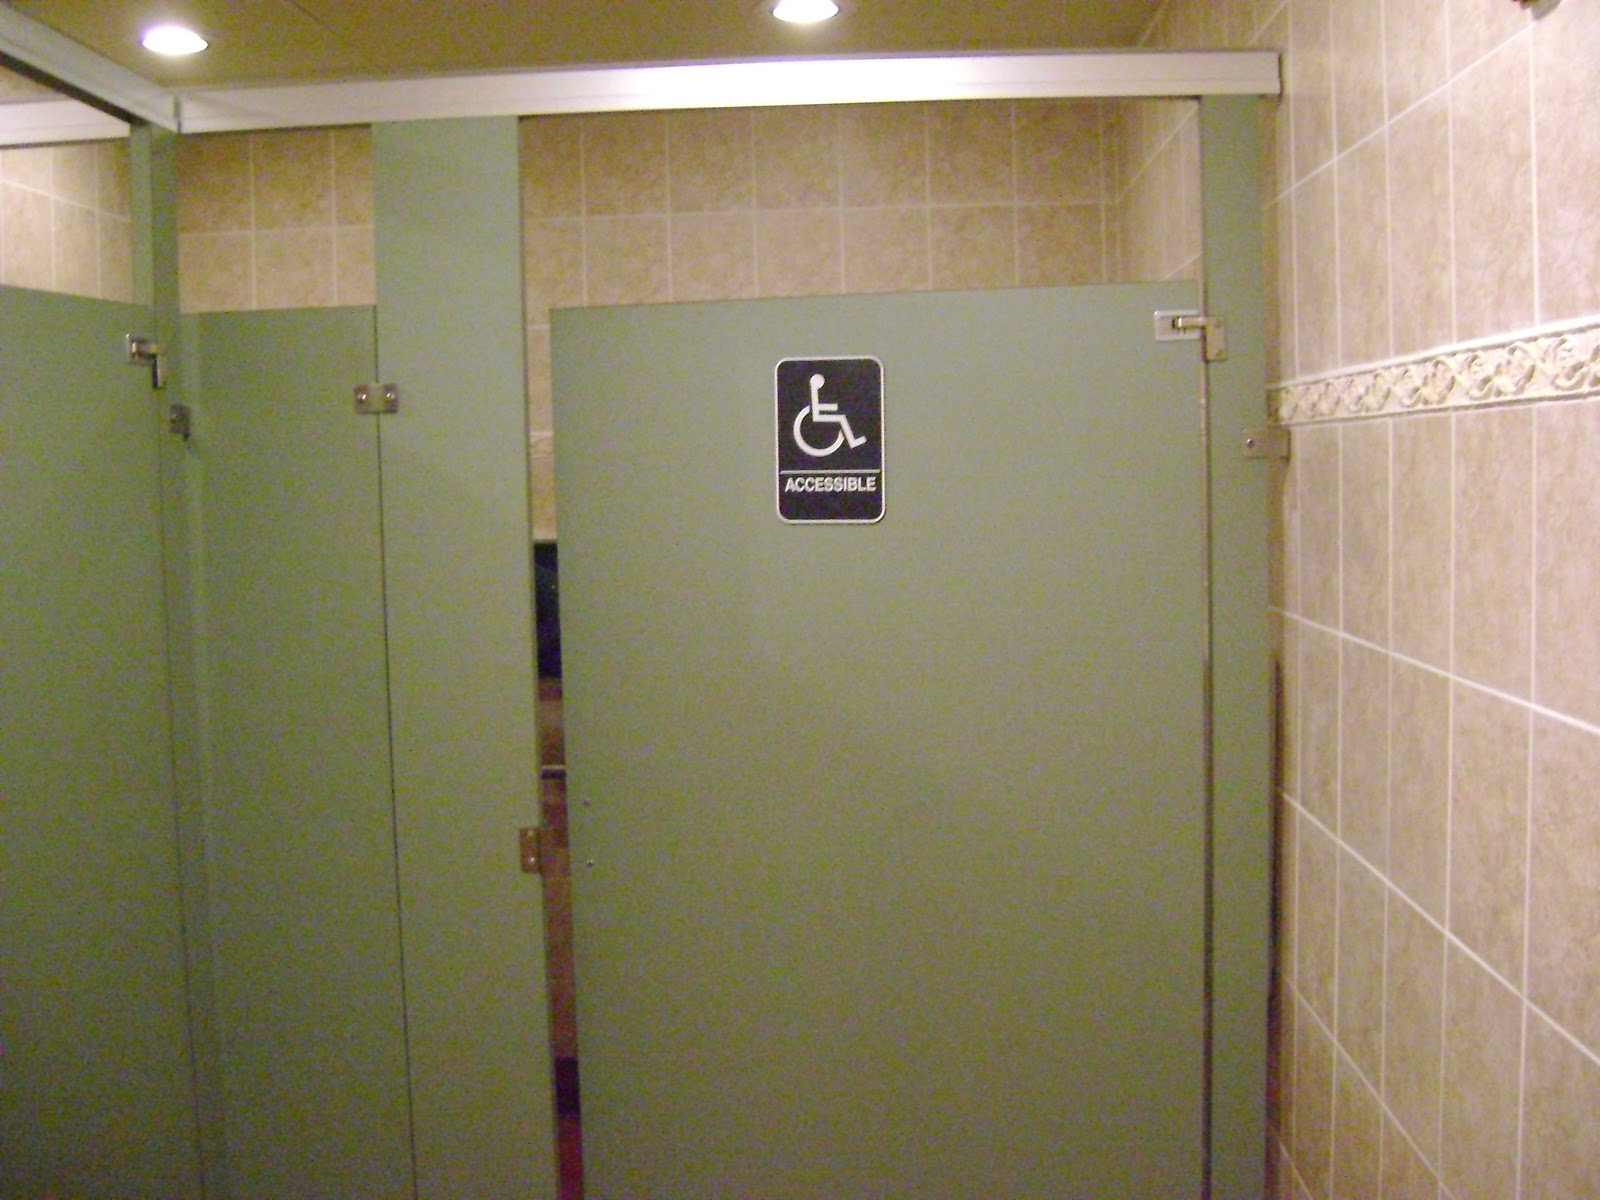 Captivating 60 Handicap Bathroom Stall Design Inspiration Of Can